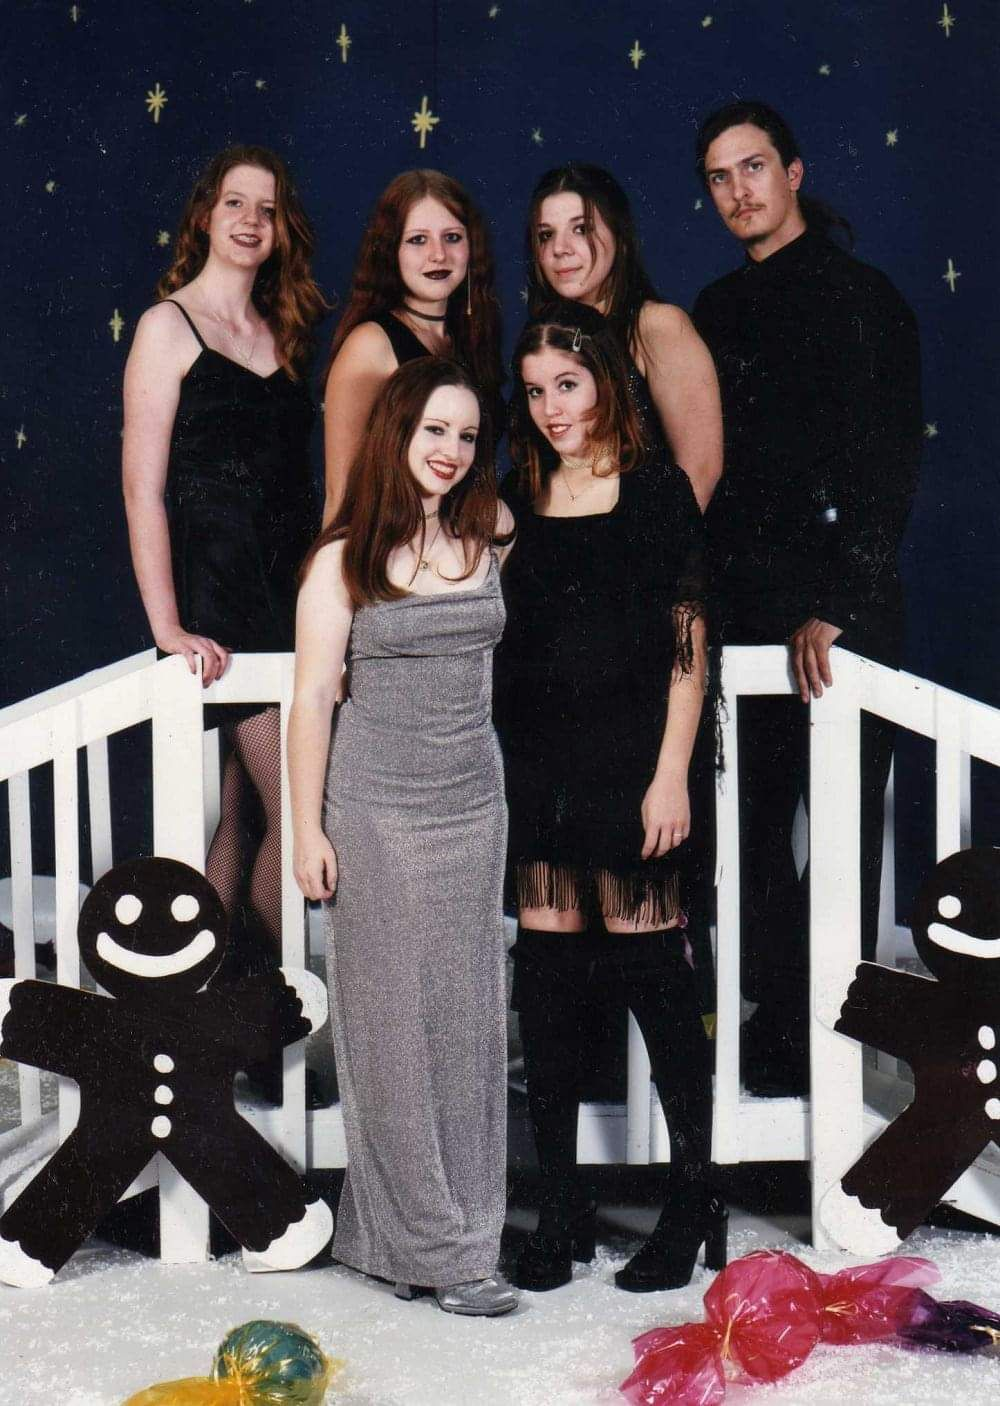 My Sister In Silver And Her Edgy Goth Friends At Prom 1999 Blunderyears Prom Edgy Sleeveless Formal Dress [ 1406 x 1000 Pixel ]